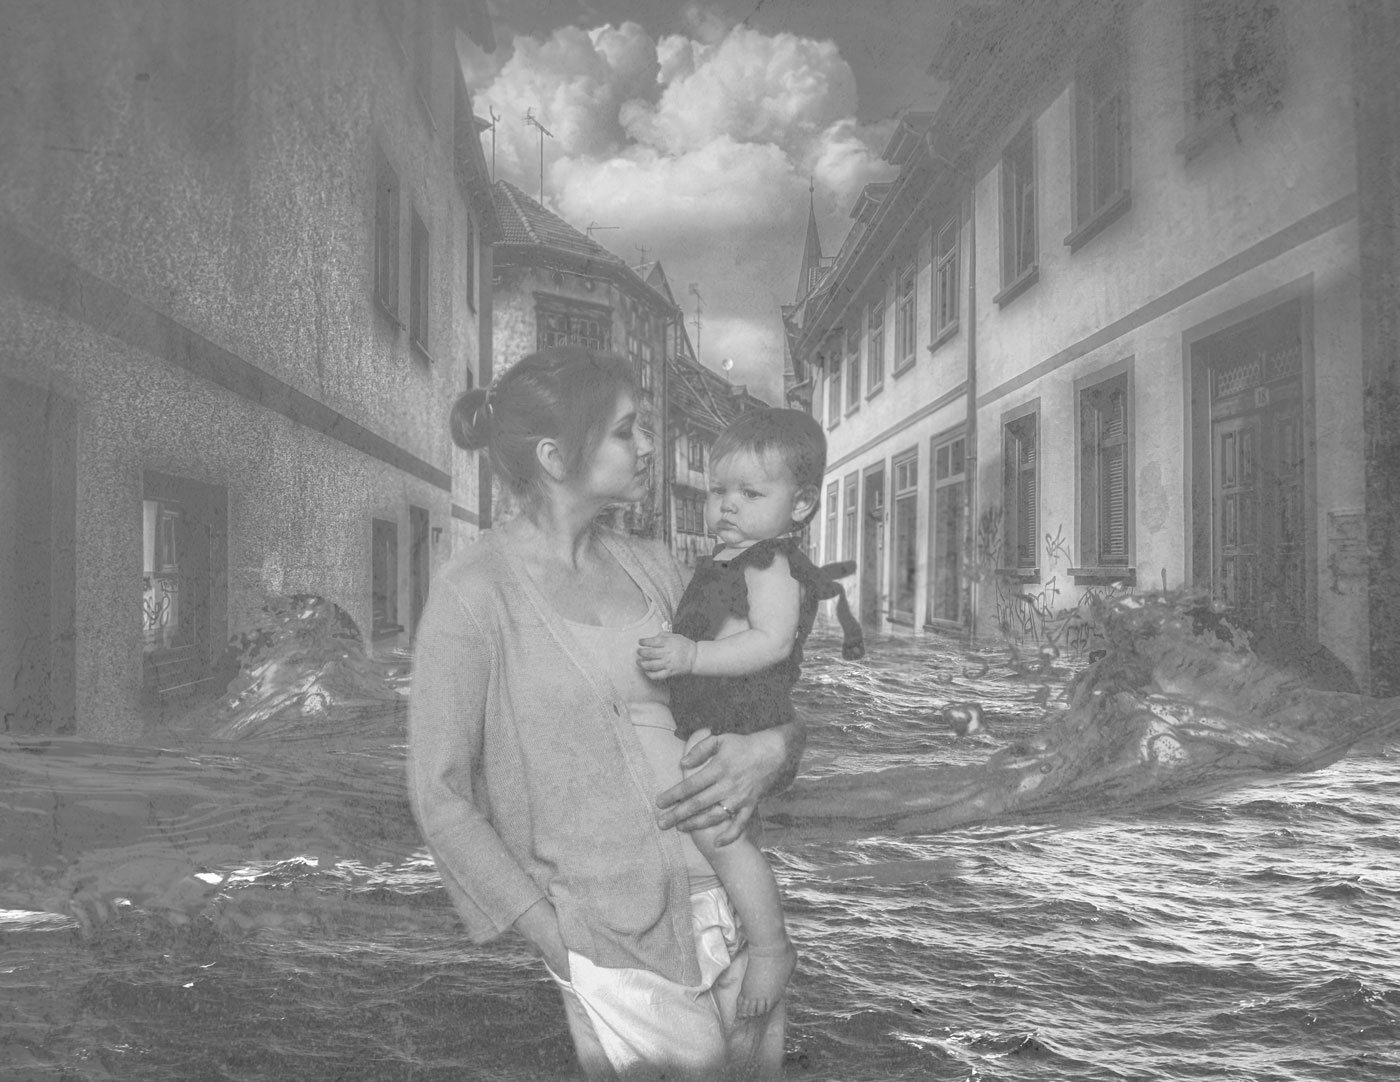 A woman holding a young child is superimposed on a scene of a flooded street.